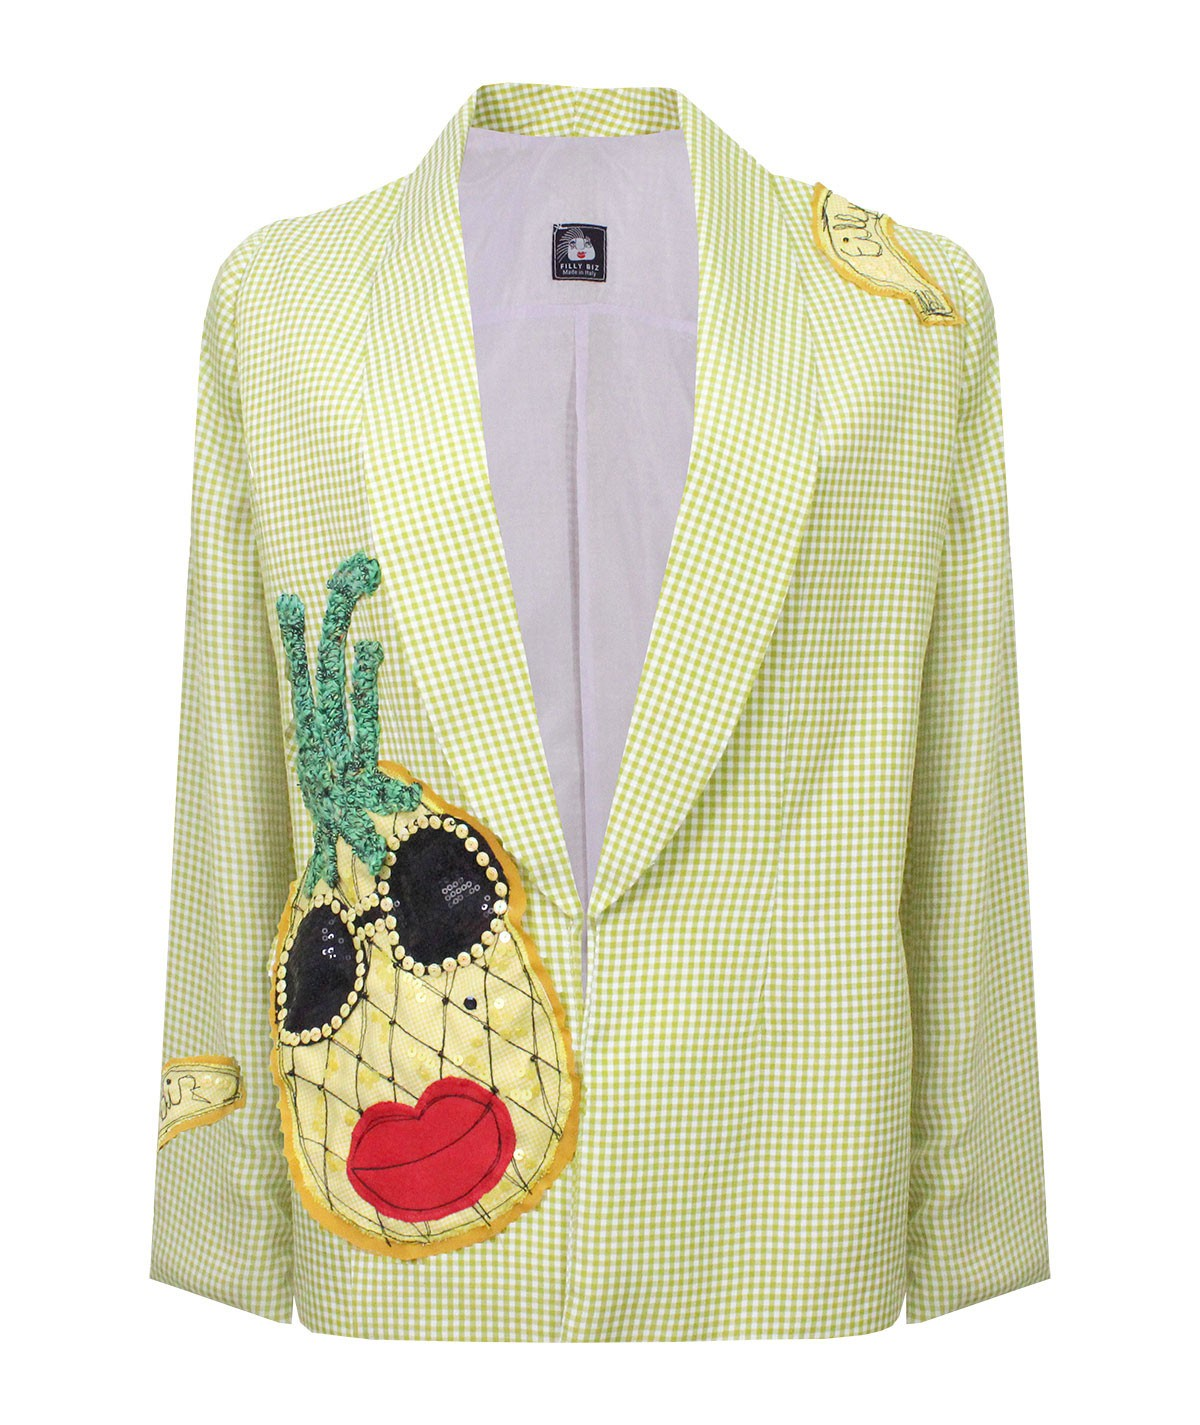 Miss Pineapple Blazer